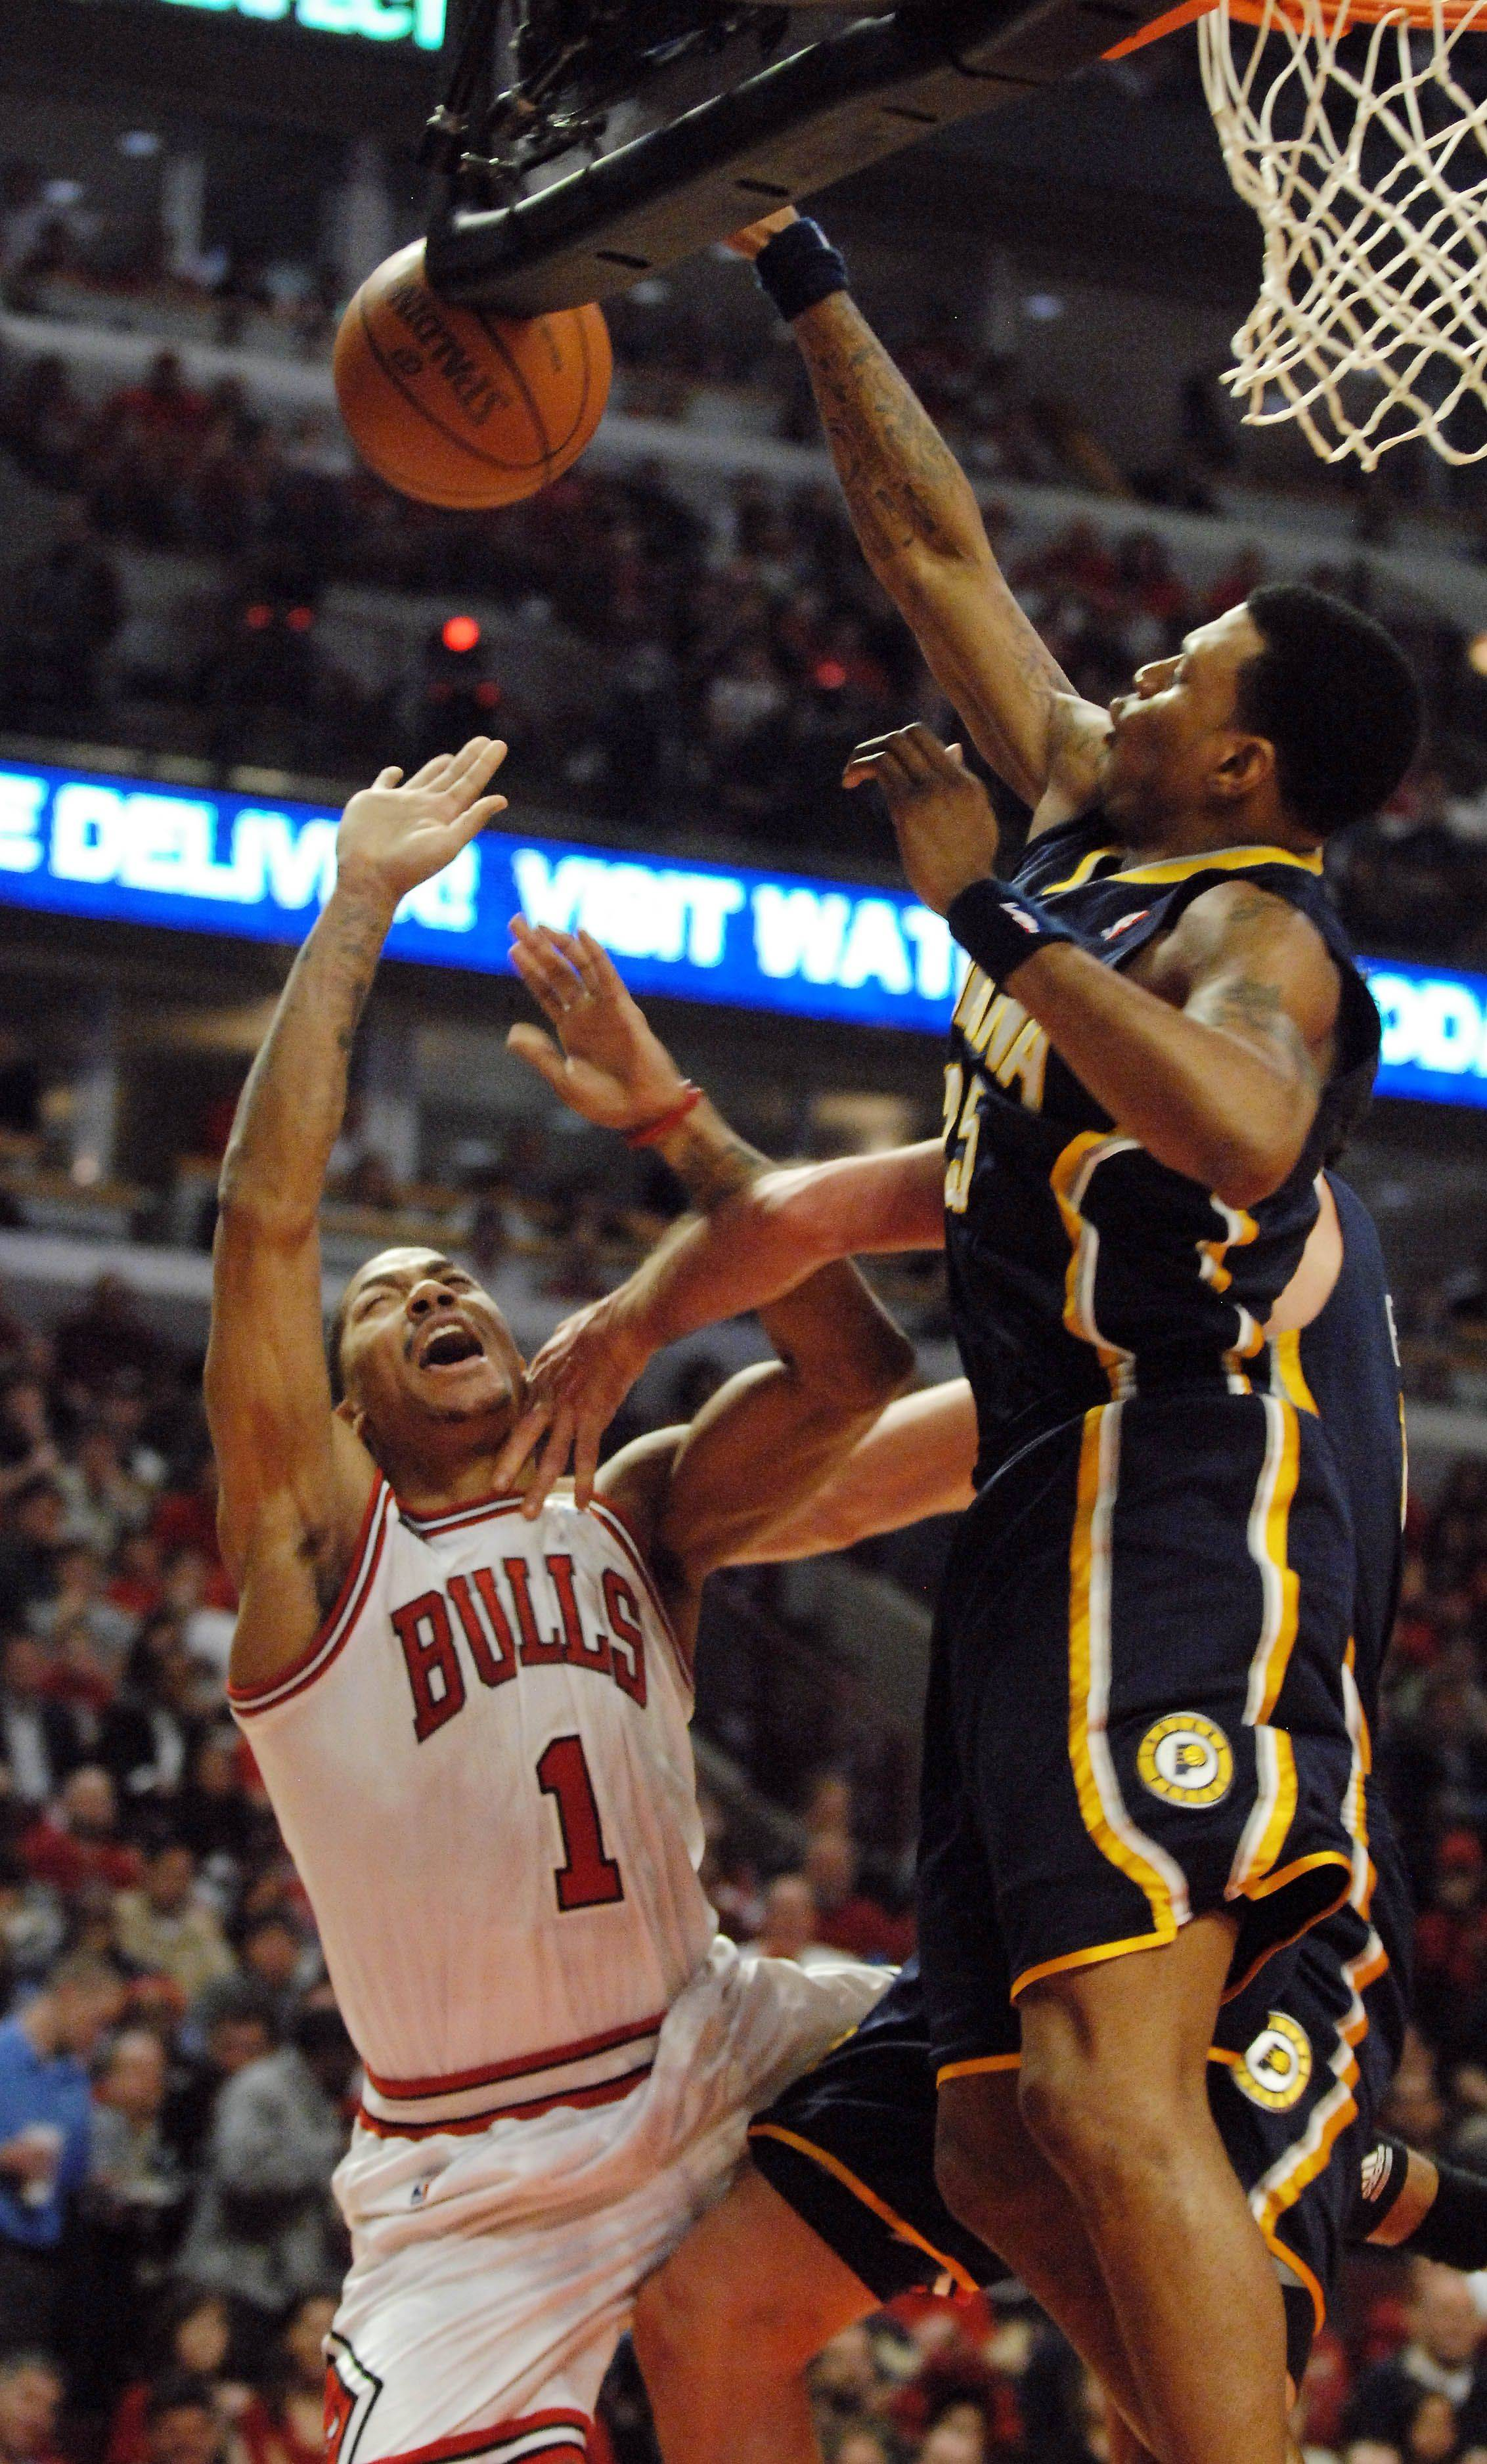 The Bulls' Derrick Rose gets fouled going to the basket Saturday against the Pacers.